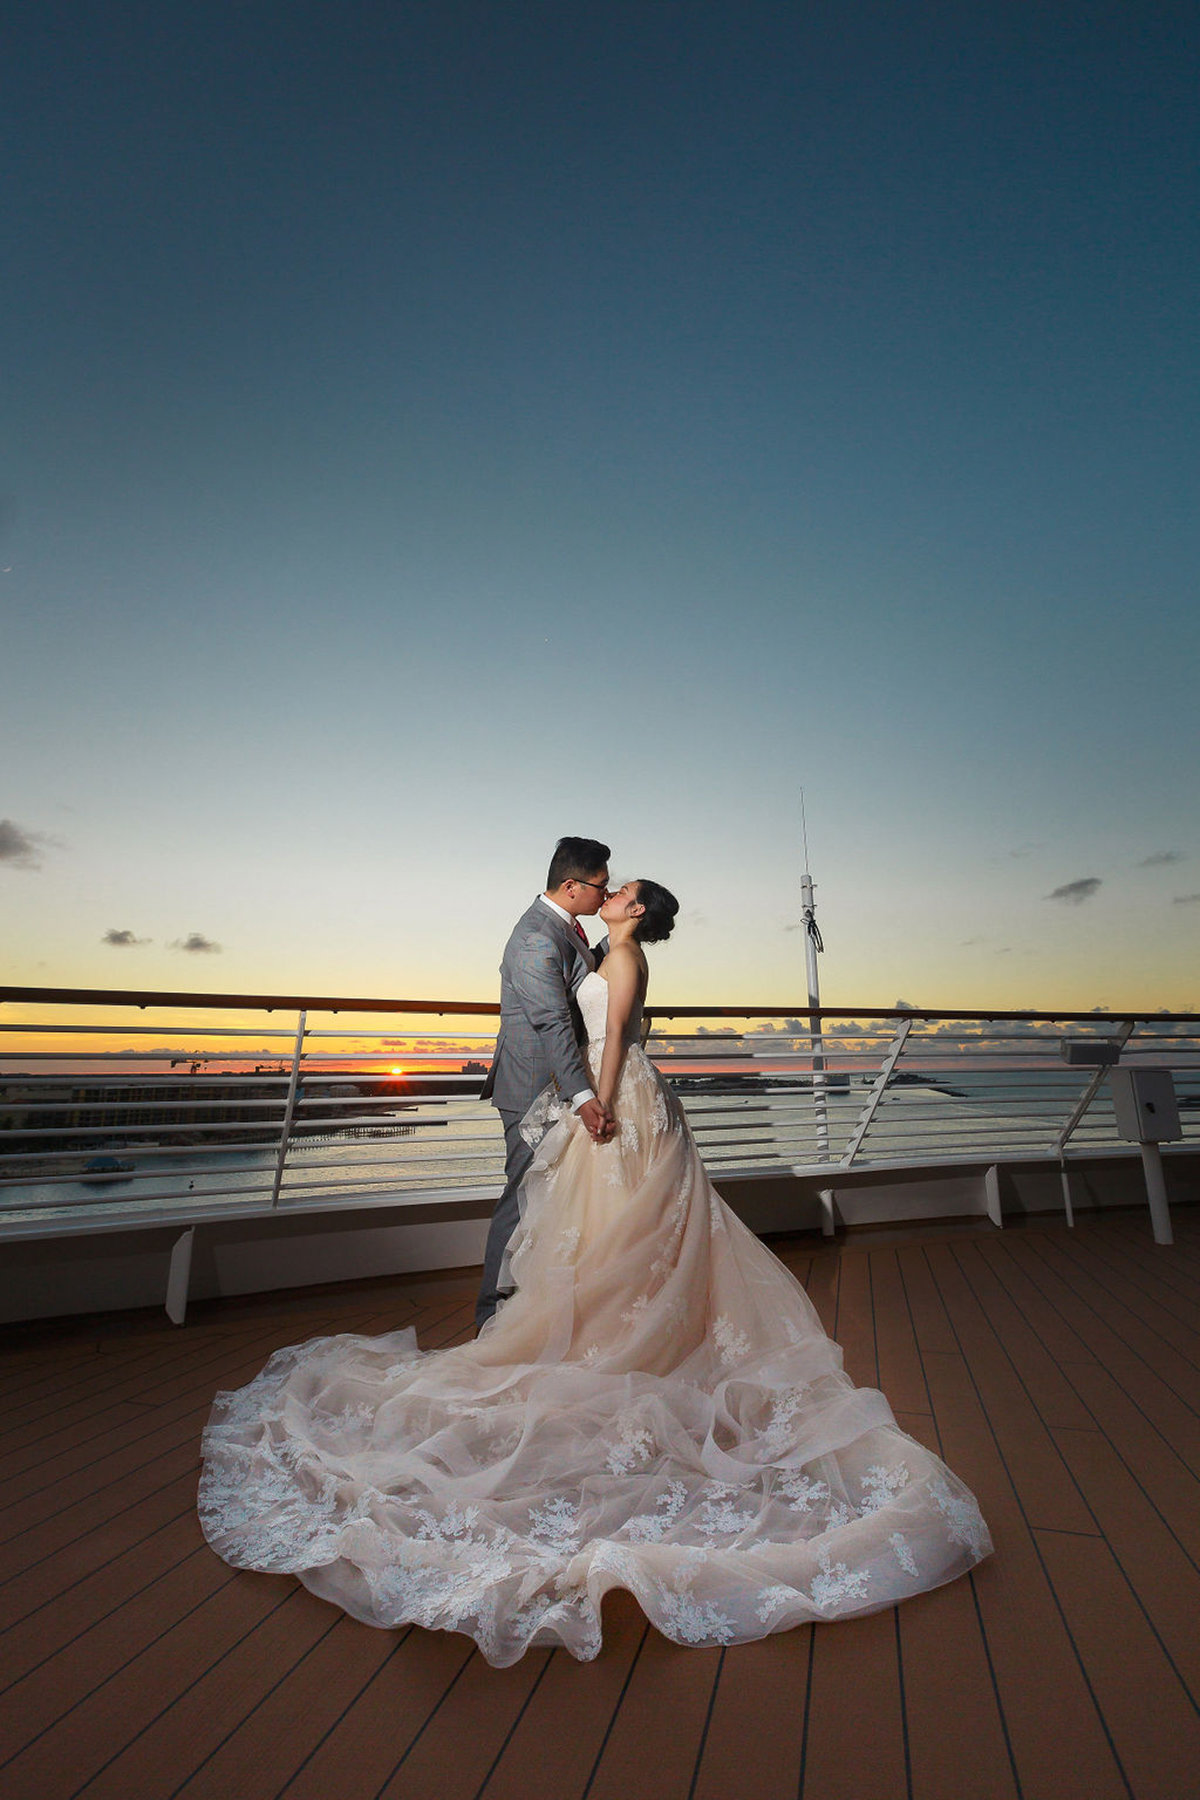 Disney-Cruise-Bride-Disney-Dream-On-Board-Wedding-Nassau-Bahamas-Jessica-Lea-IMG-966